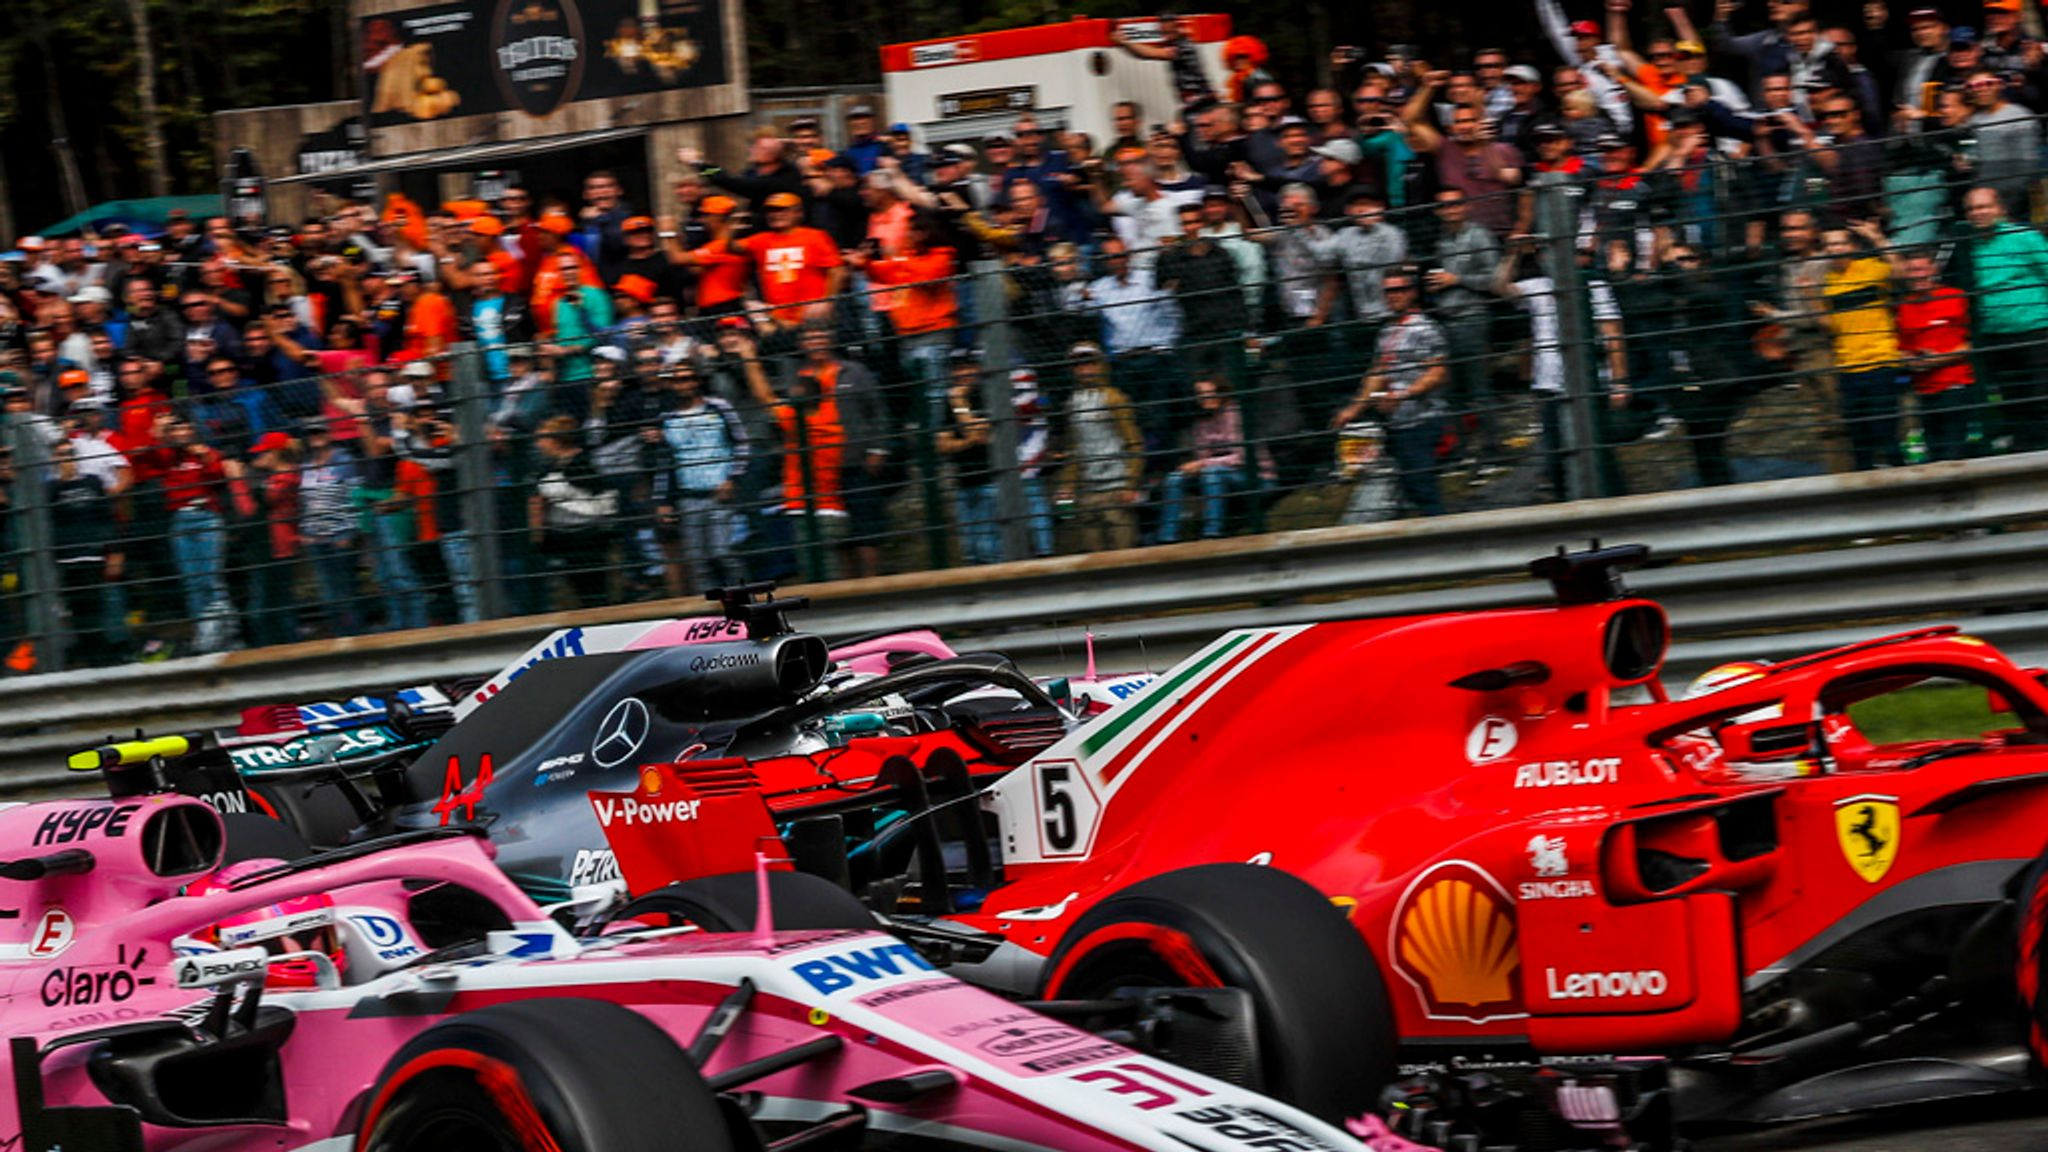 F1 2020 Calendario.Vietnam Gp To Be Hosted In Hanoi From 2020 F1 Season F1 News